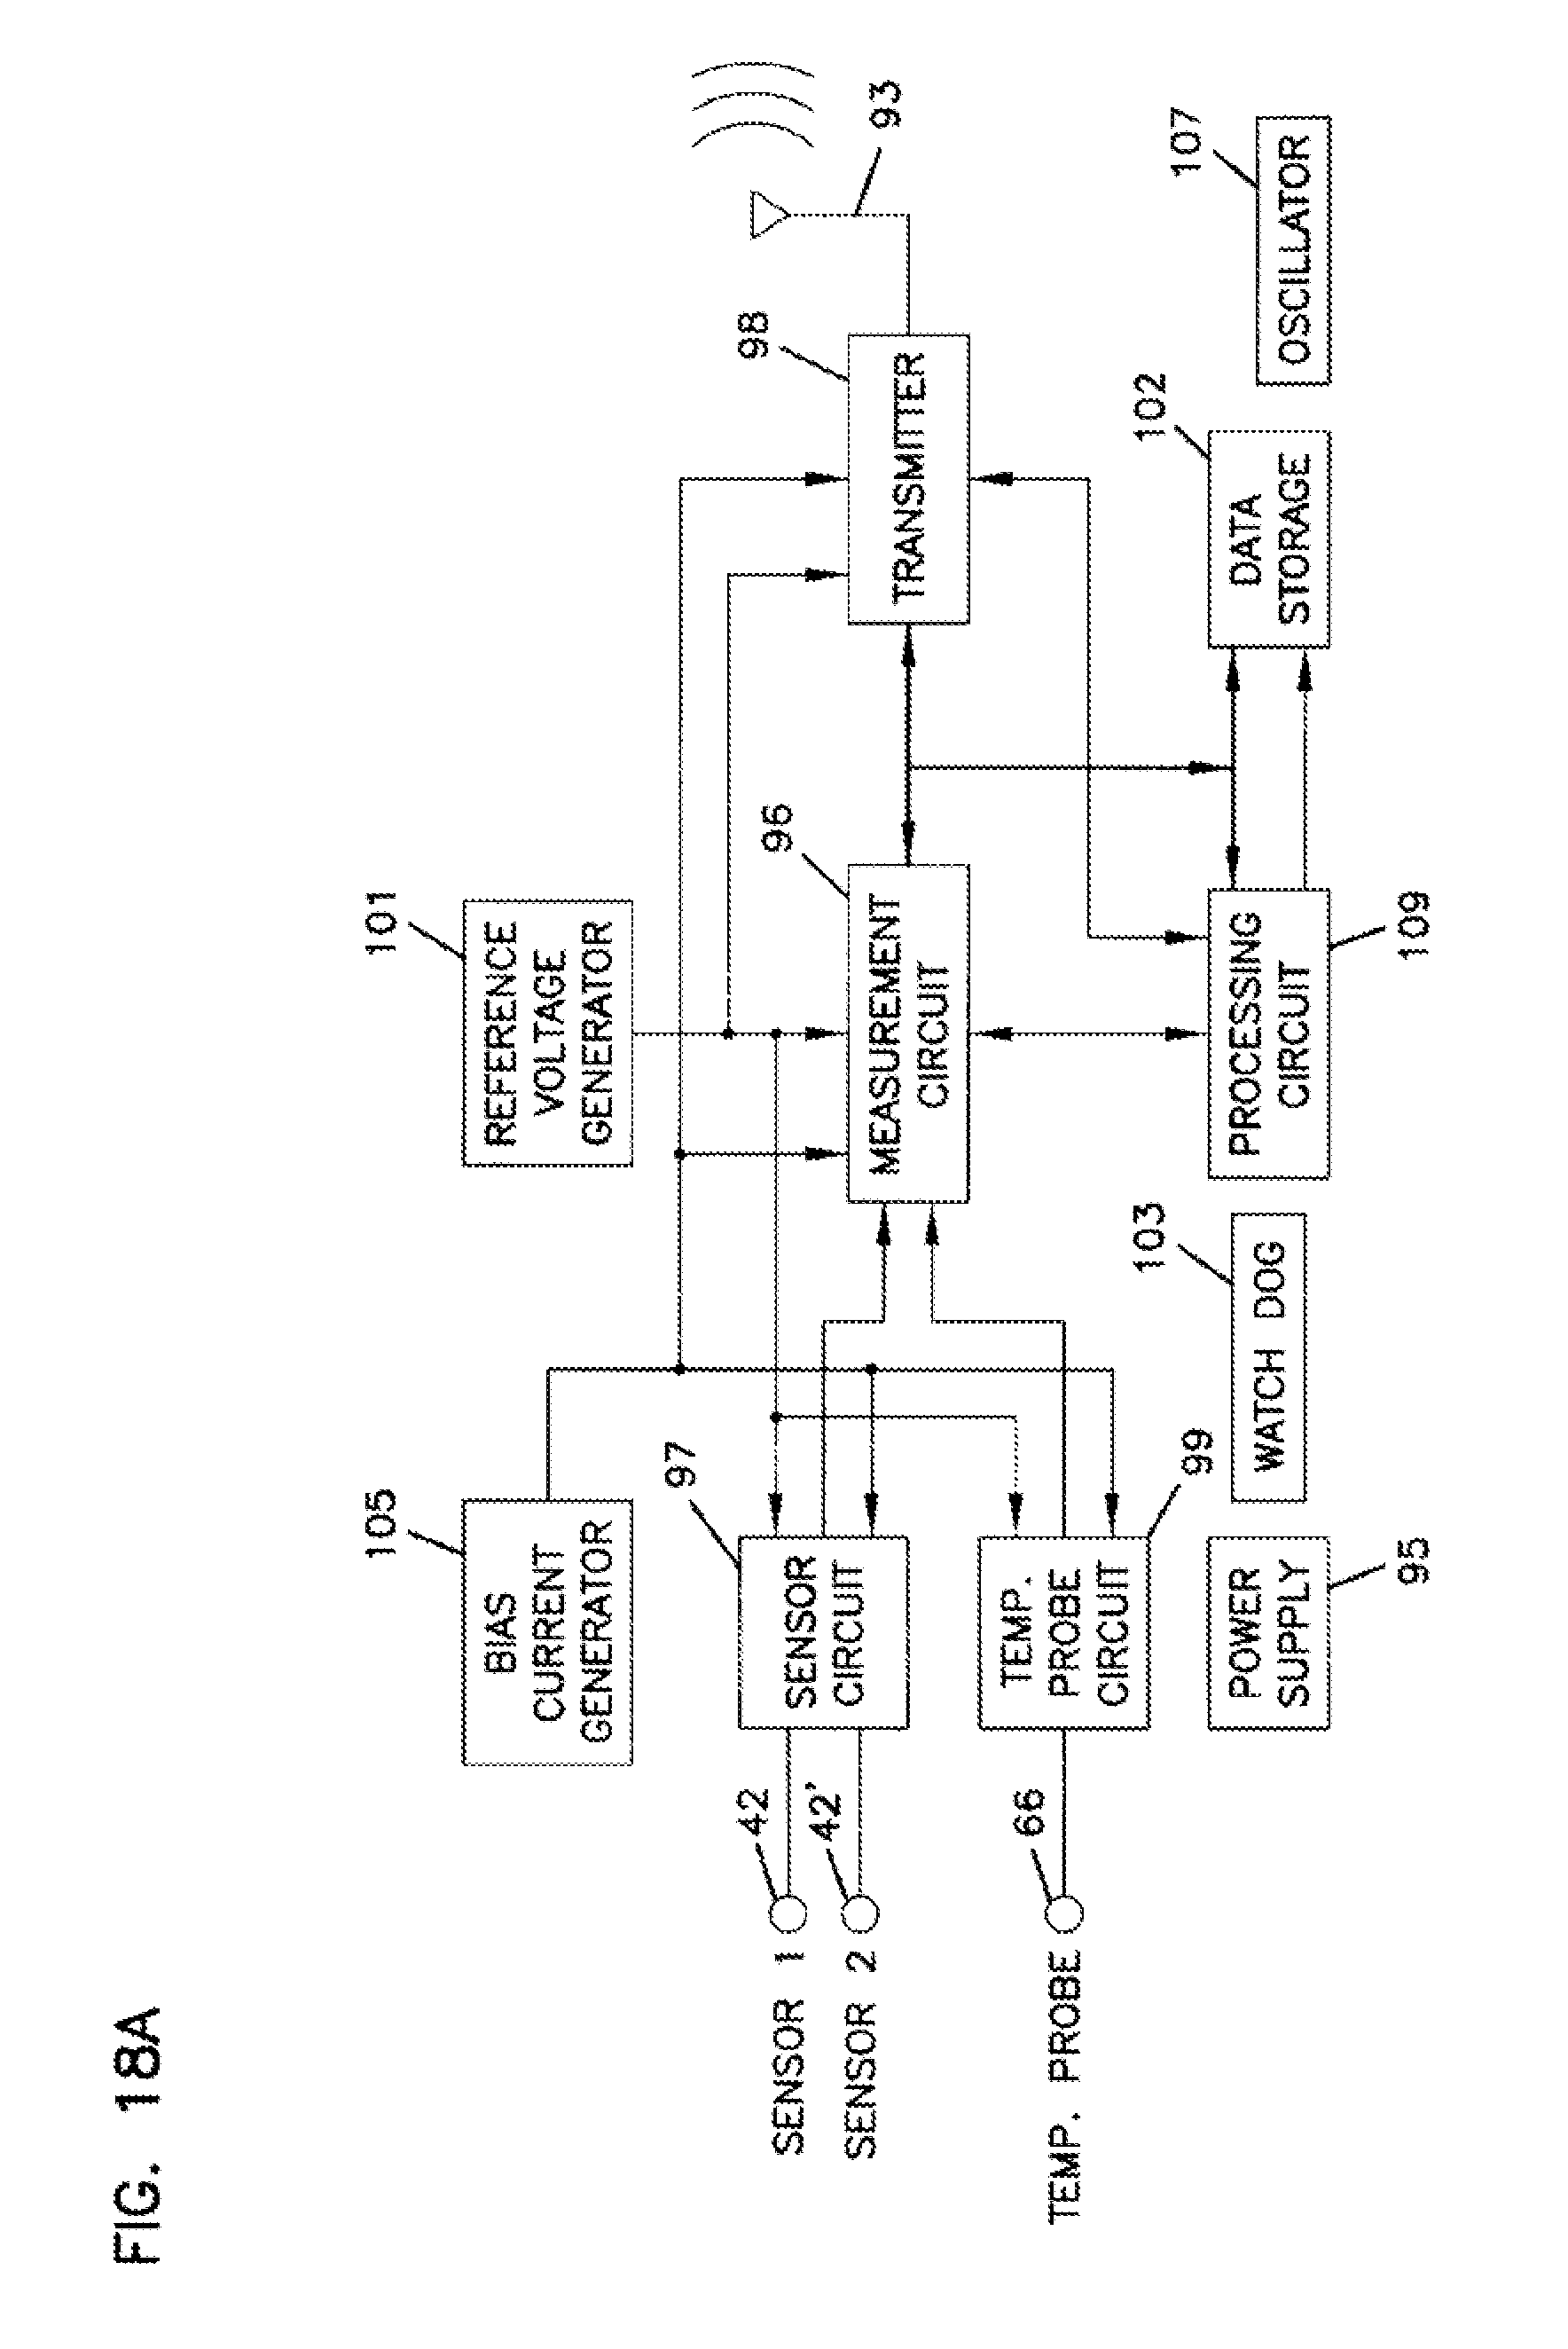 Us9014773b2 Analyte Monitoring Device And Methods Of Use Google Solid State Relay Schematic Symbol Panasonic Electric Works Patents